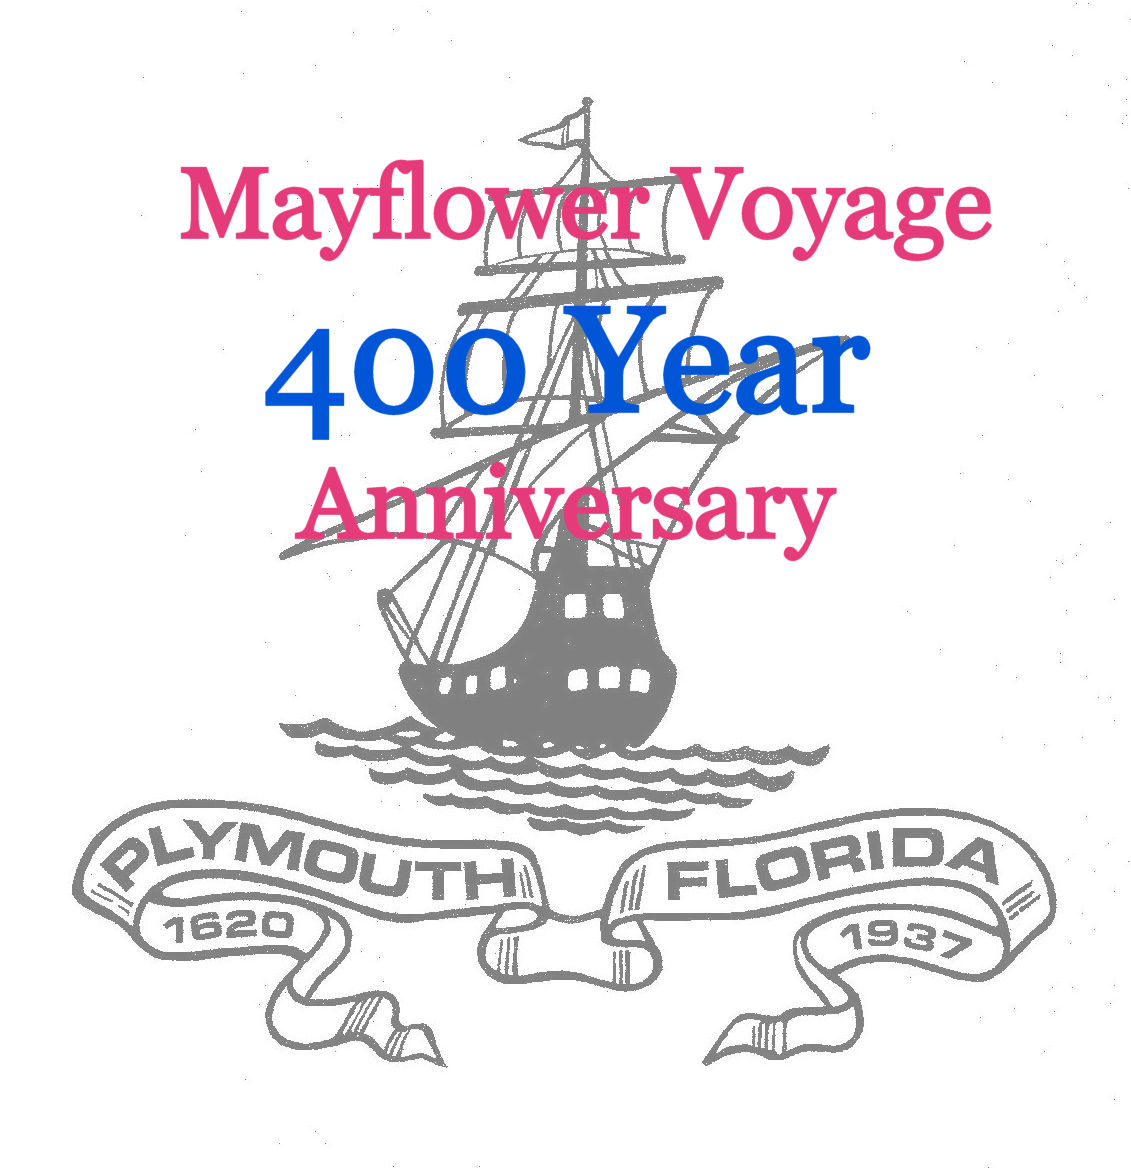 Society of Mayflower Descendants in the State of Florida